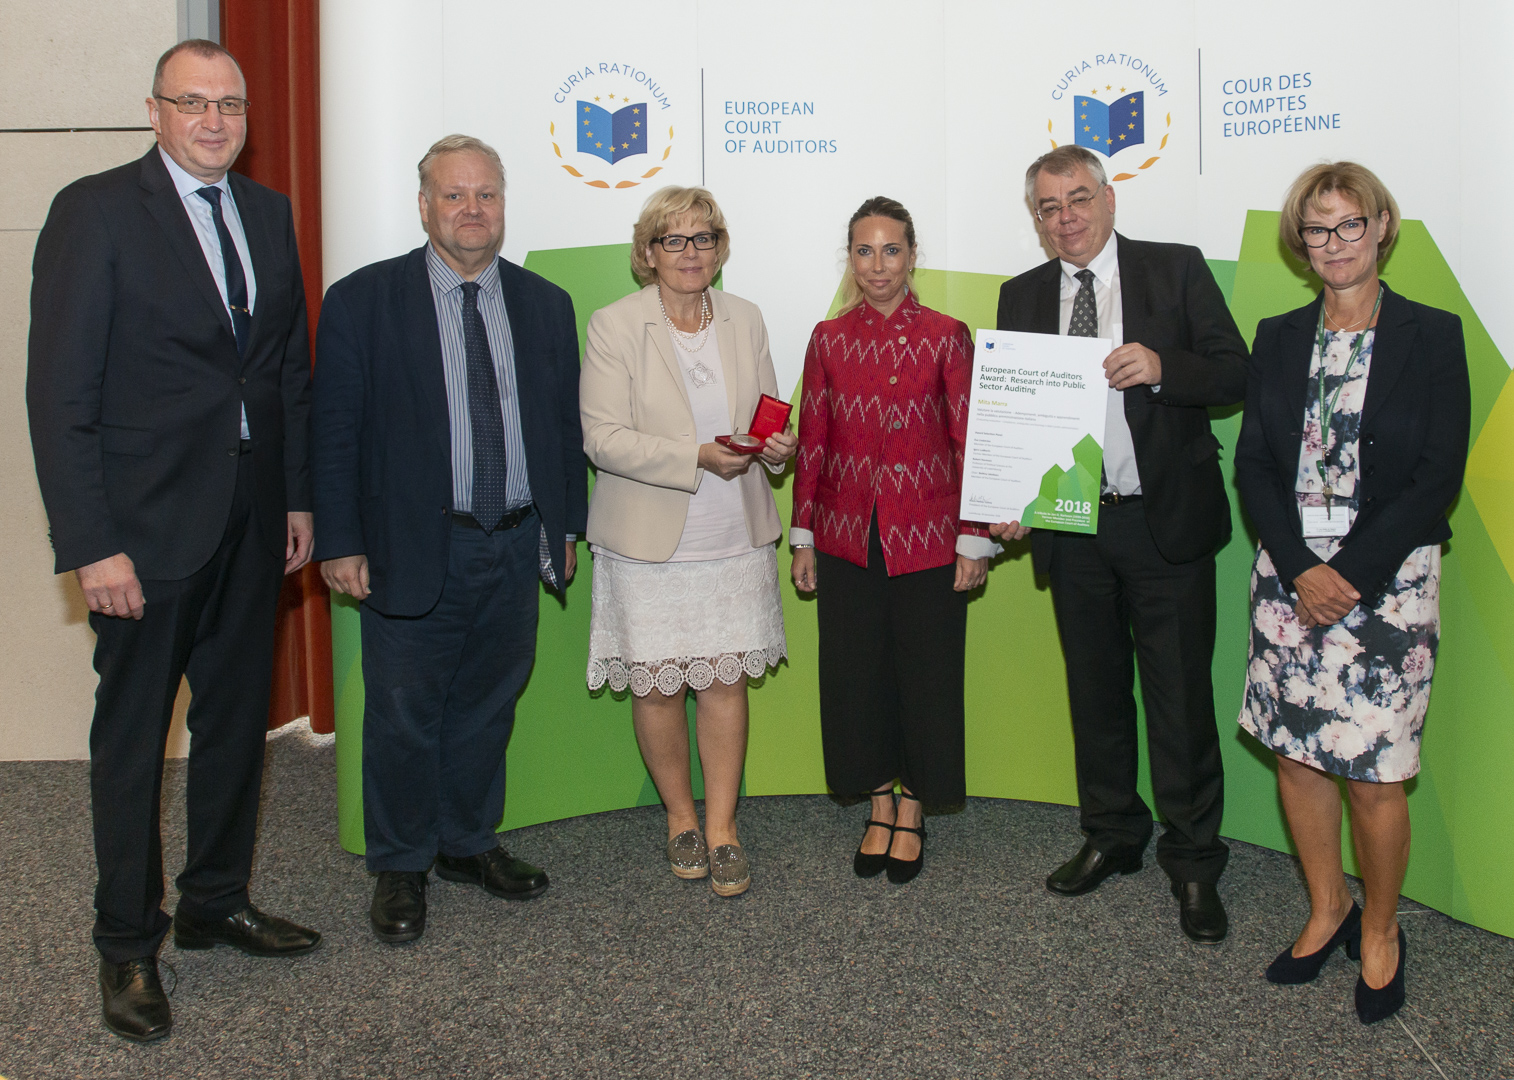 2018 ECA Award 'Jan O. Karlsson' Award Ceremony